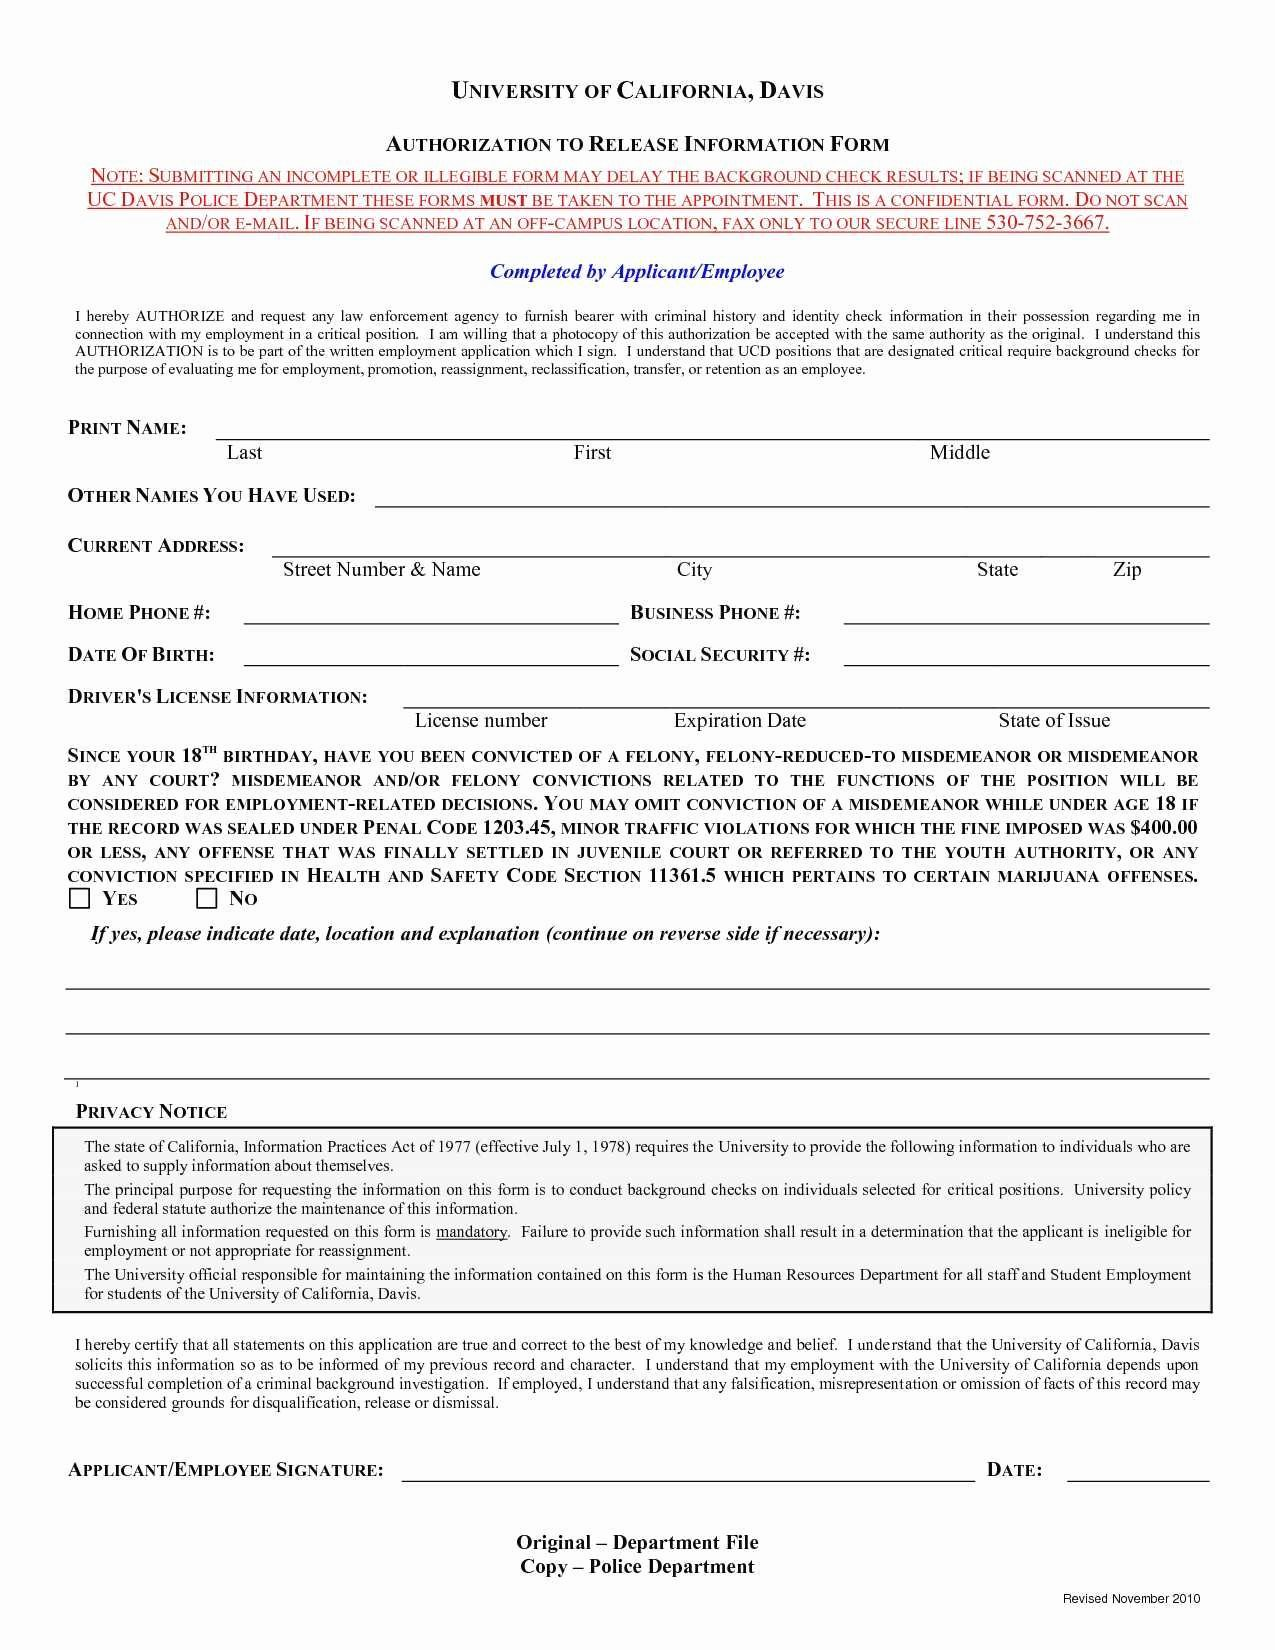 Background Check form Template Awesome Luxury Background Check Release form Template Free